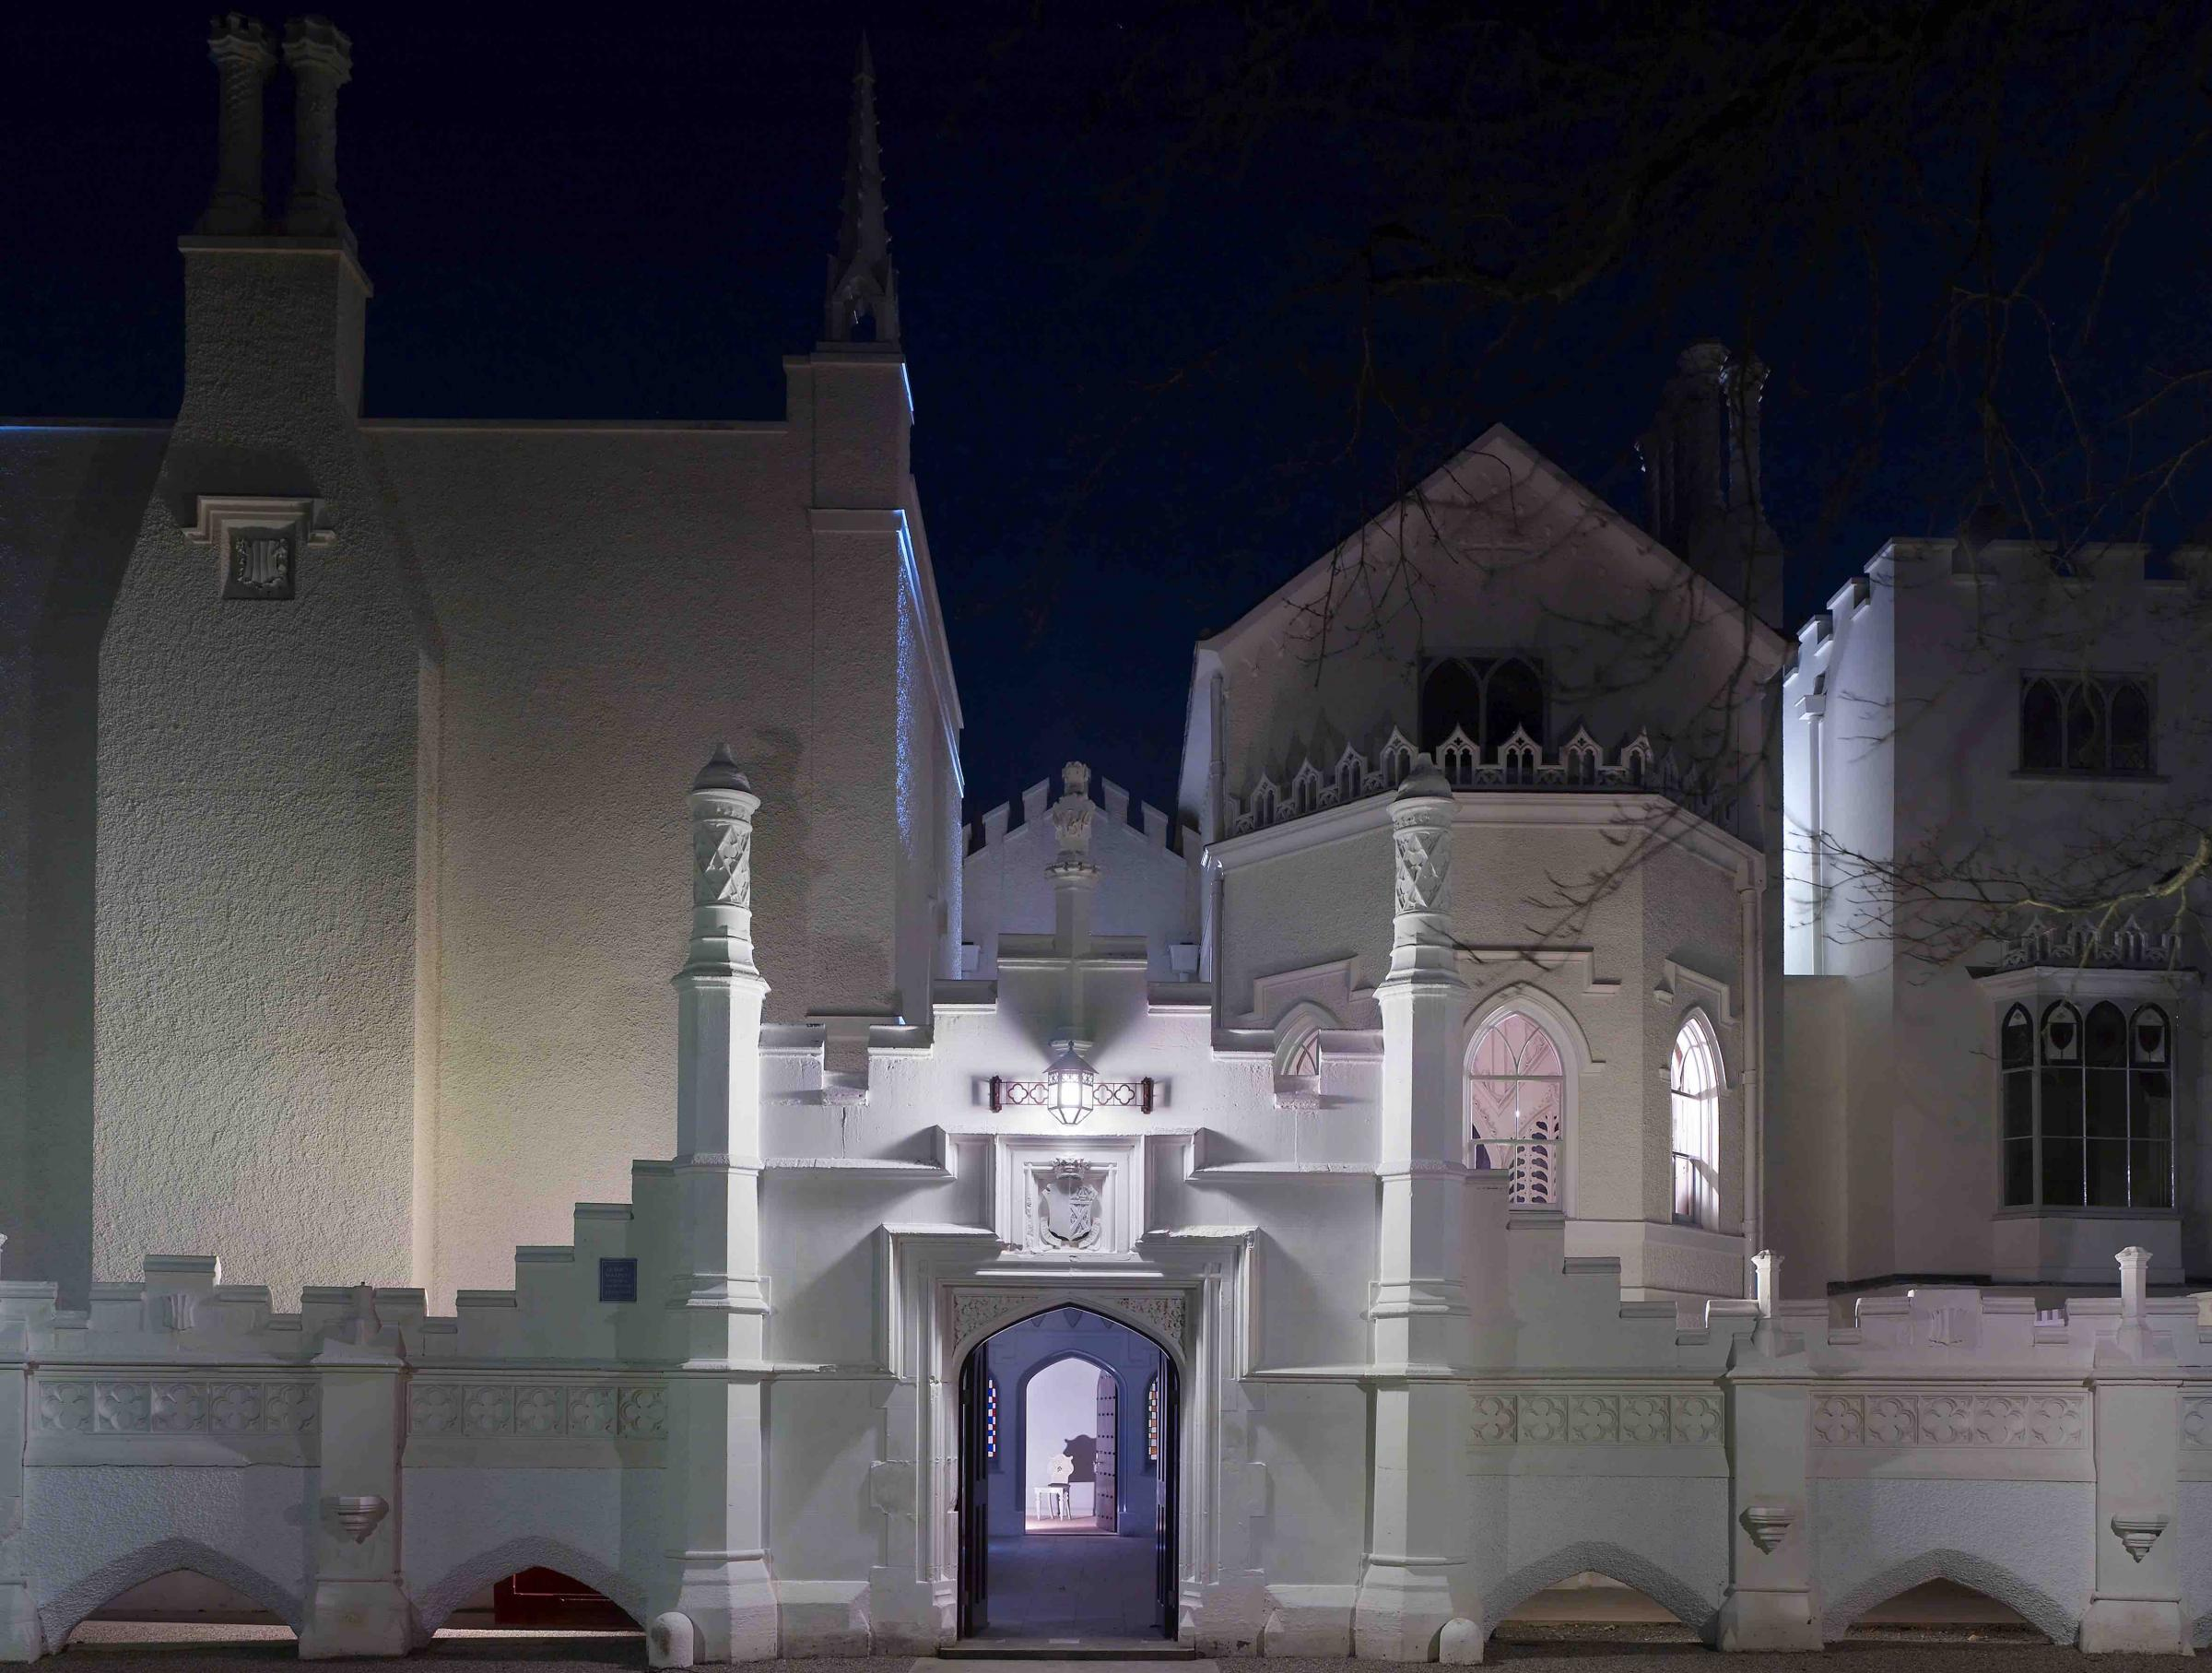 Twilight Guided House Tours of Strawberry Hill House